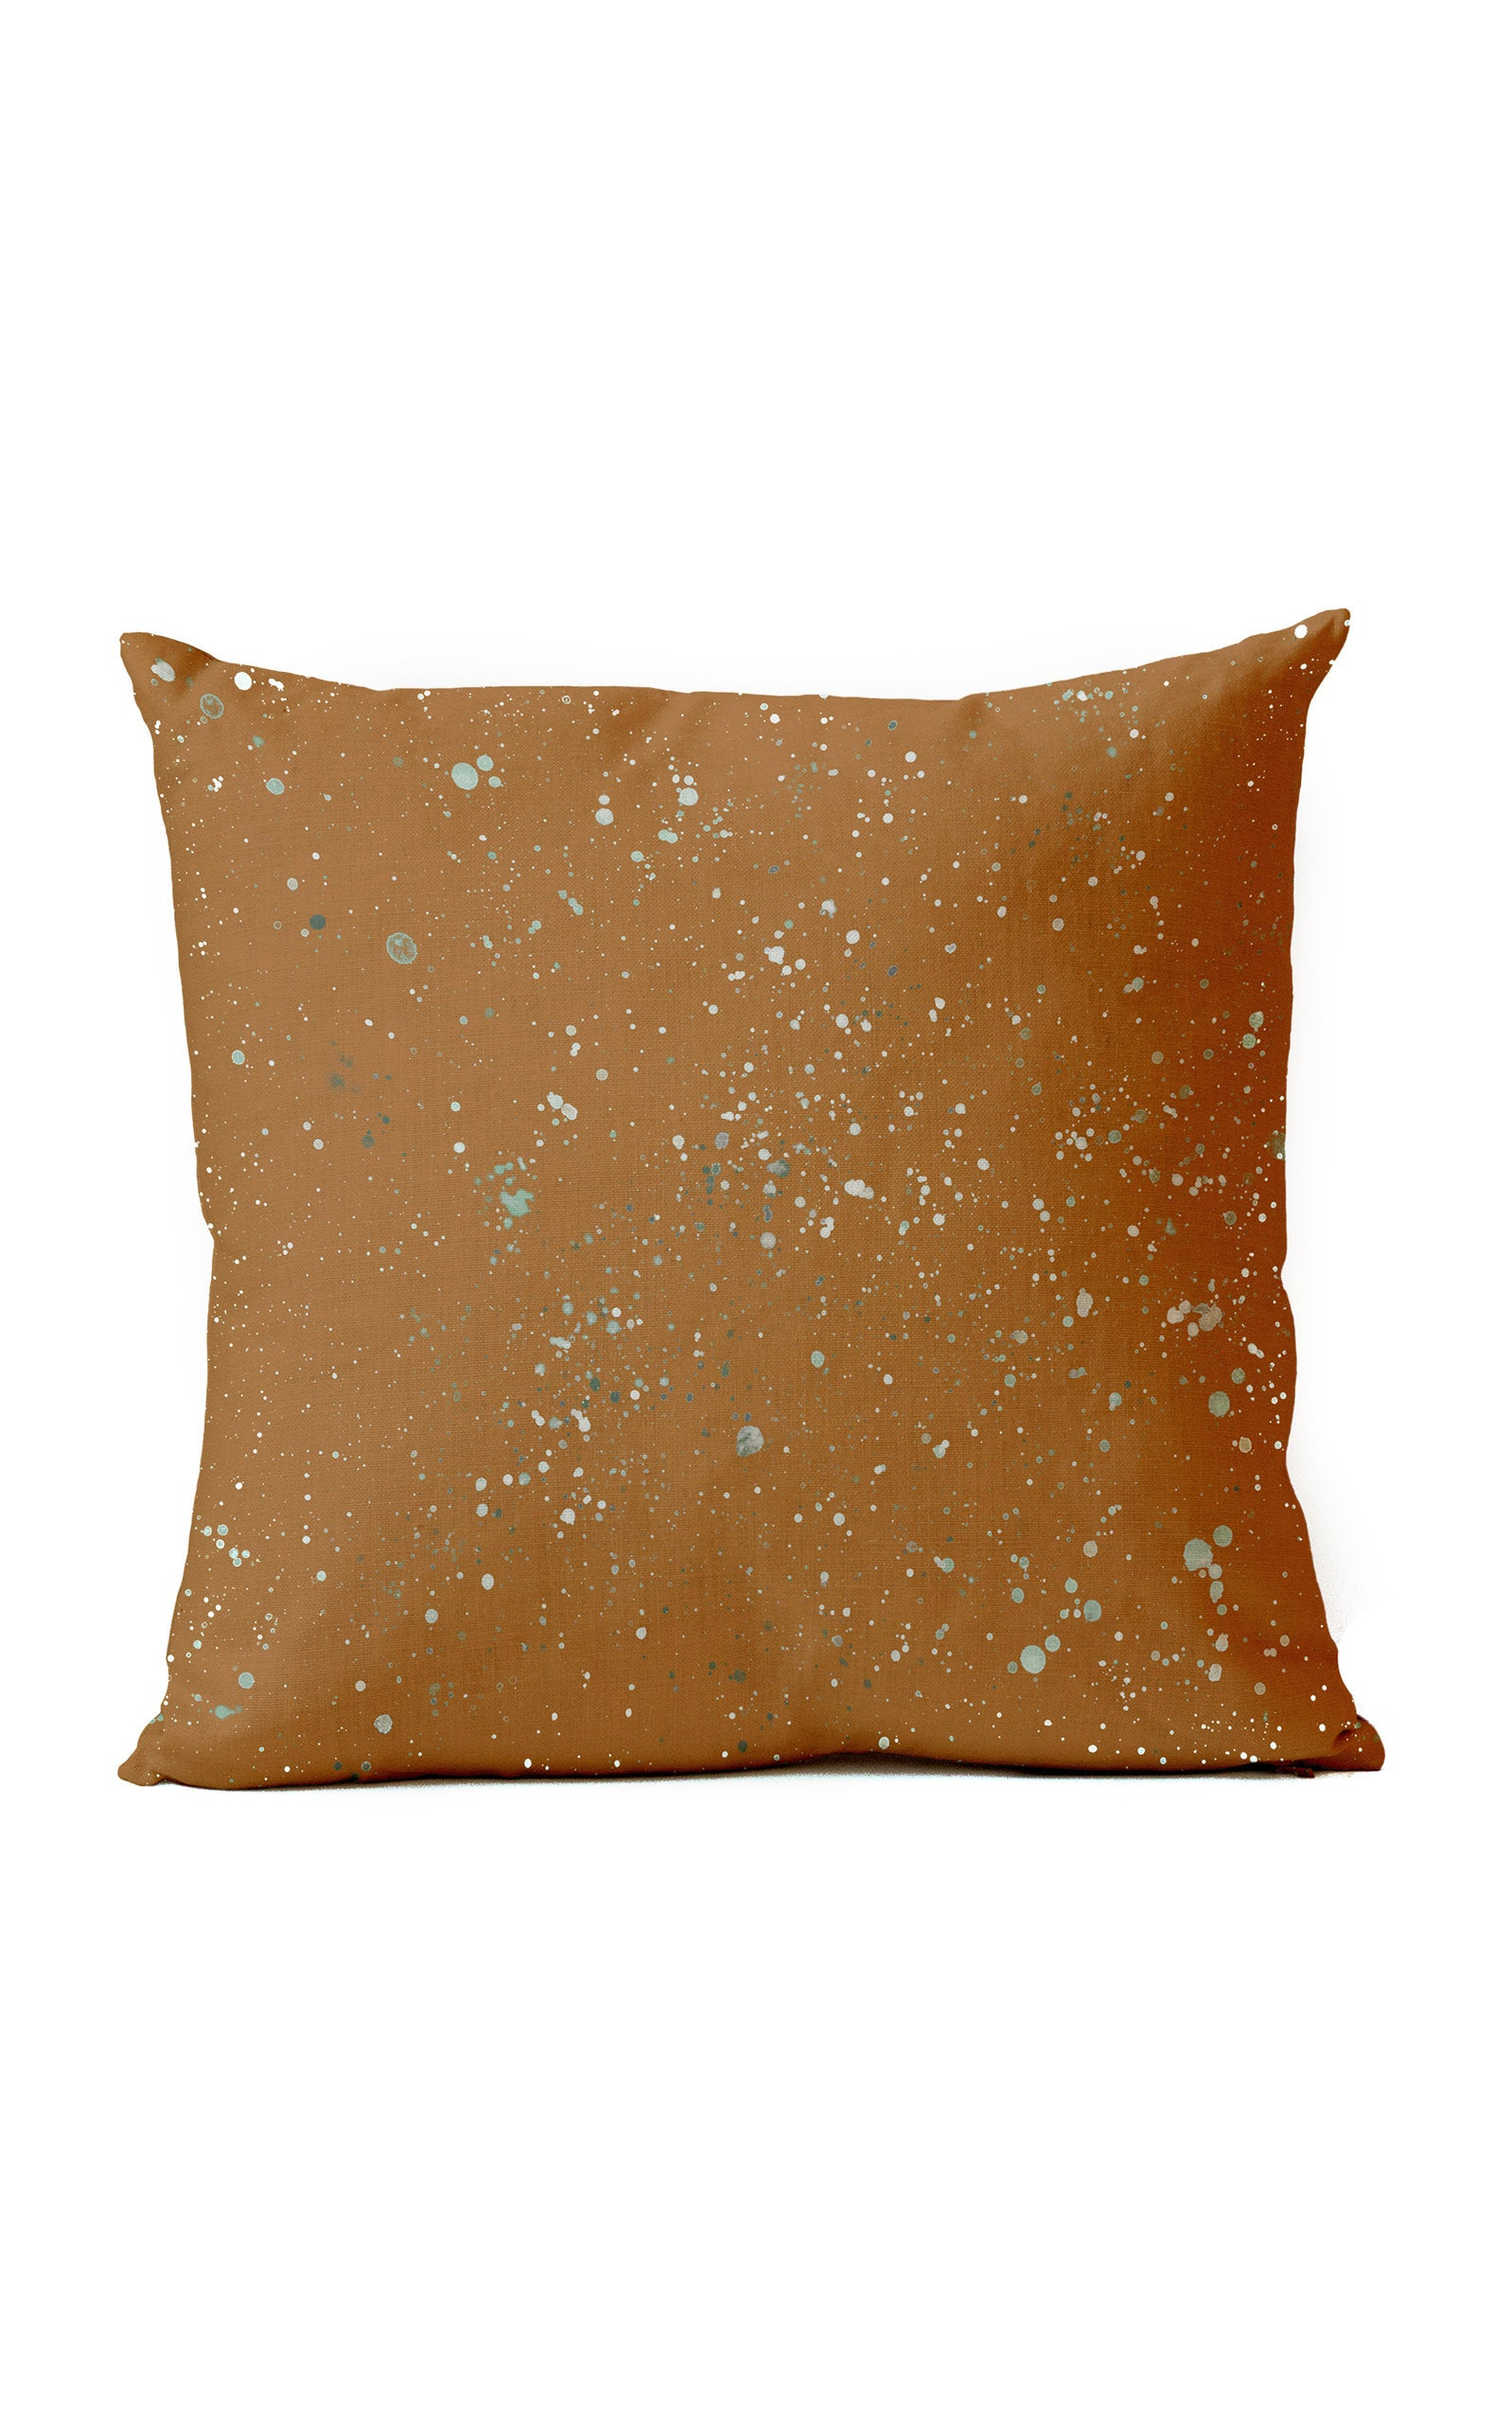 large_cope-brown-speckle-amber-pillow